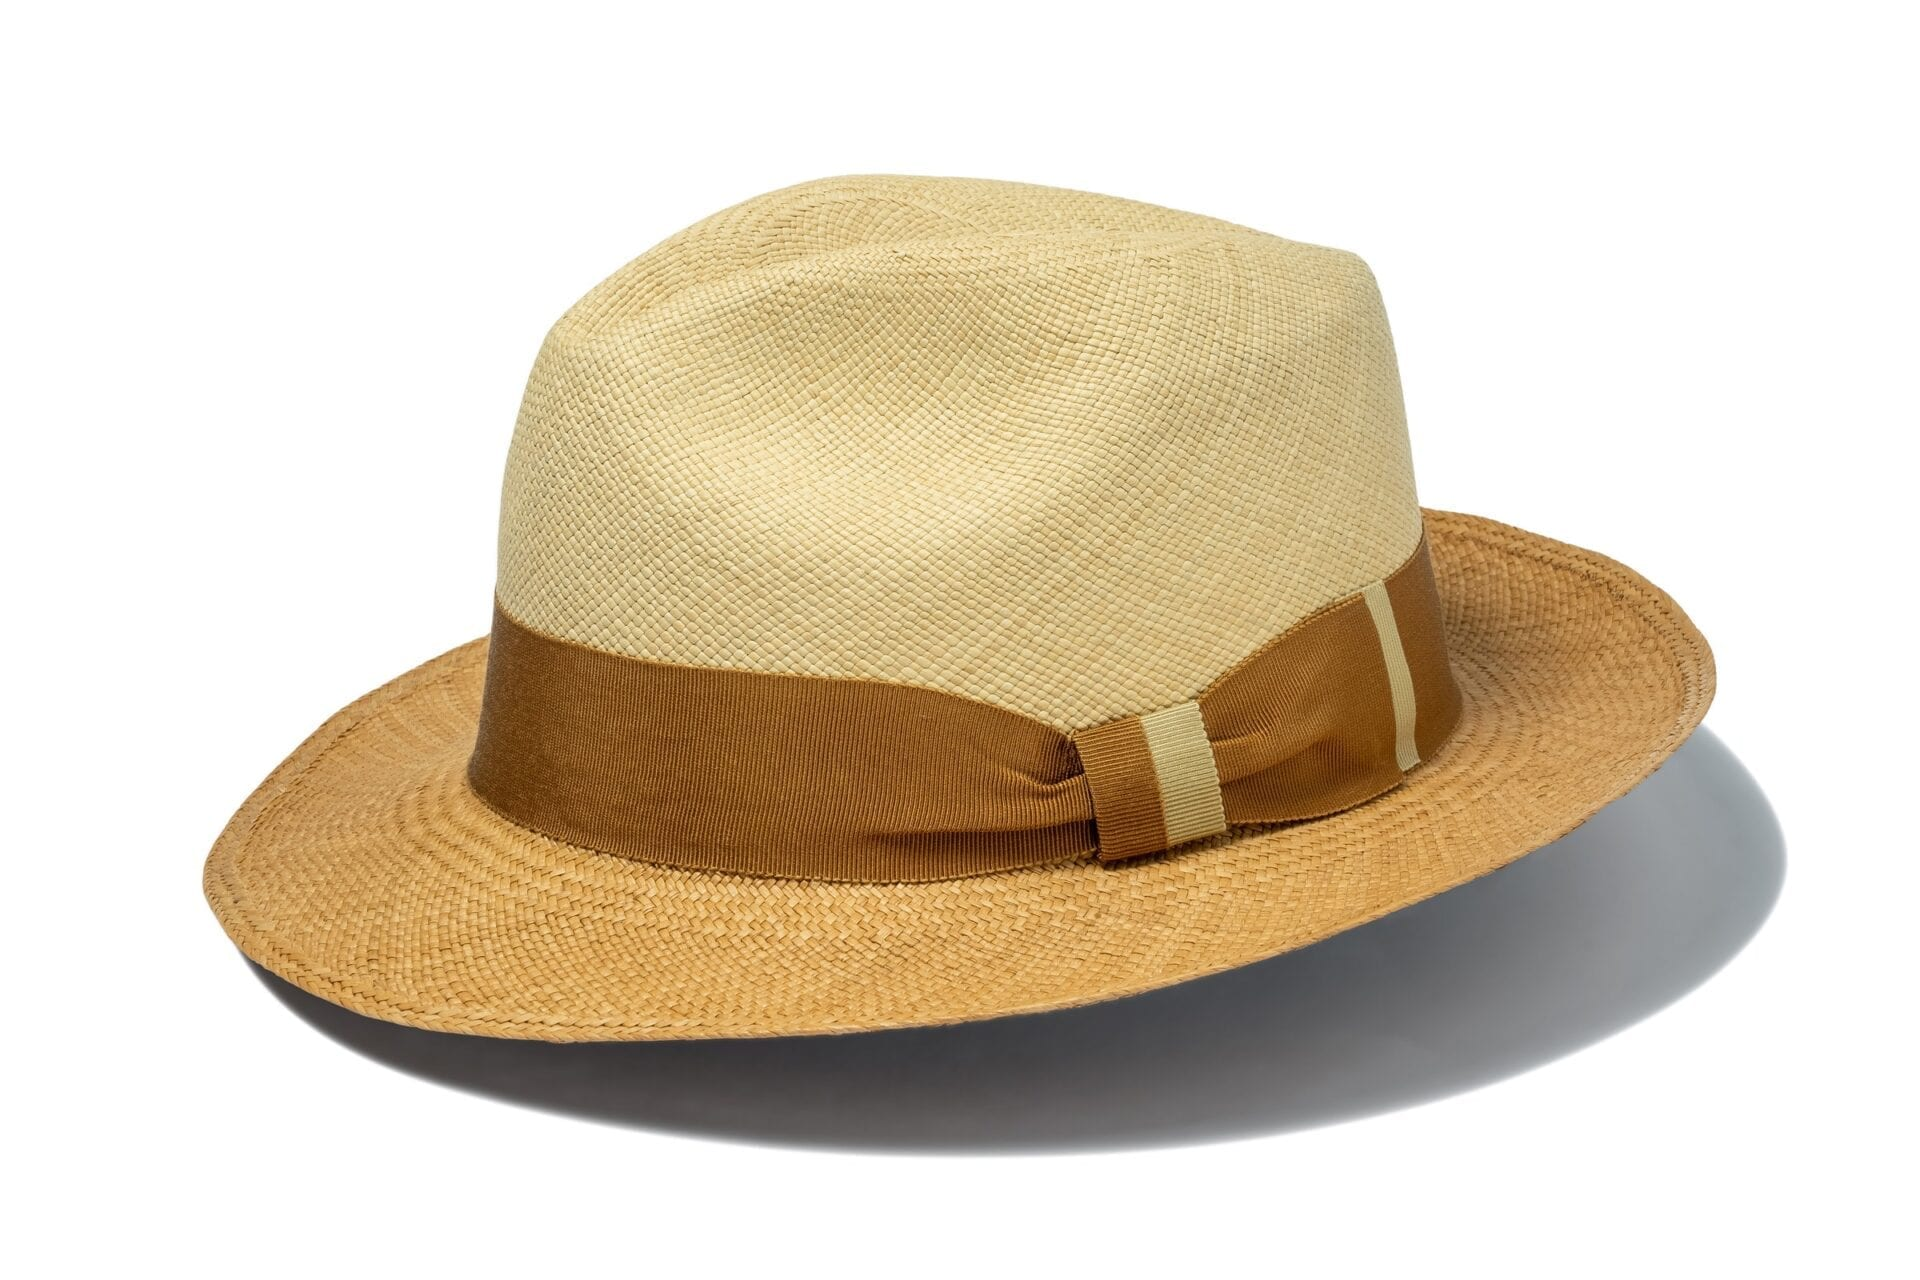 Women's Summery Fedora Hat